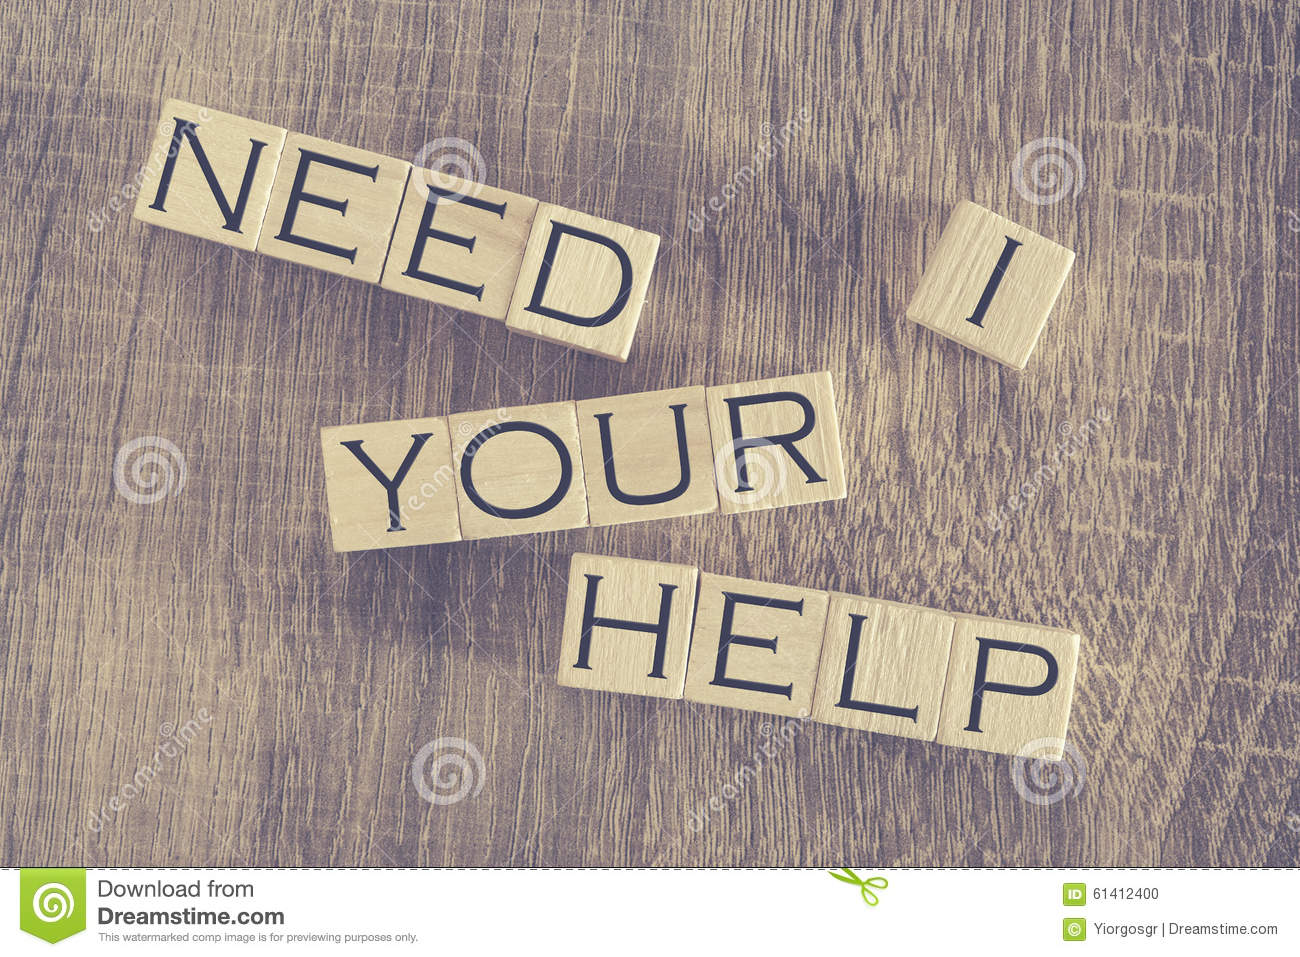 i need your help to open We need your help helpguide has no advertising or corporate sponsors we depend on support from our readers all donations help and are greatly appreciated.